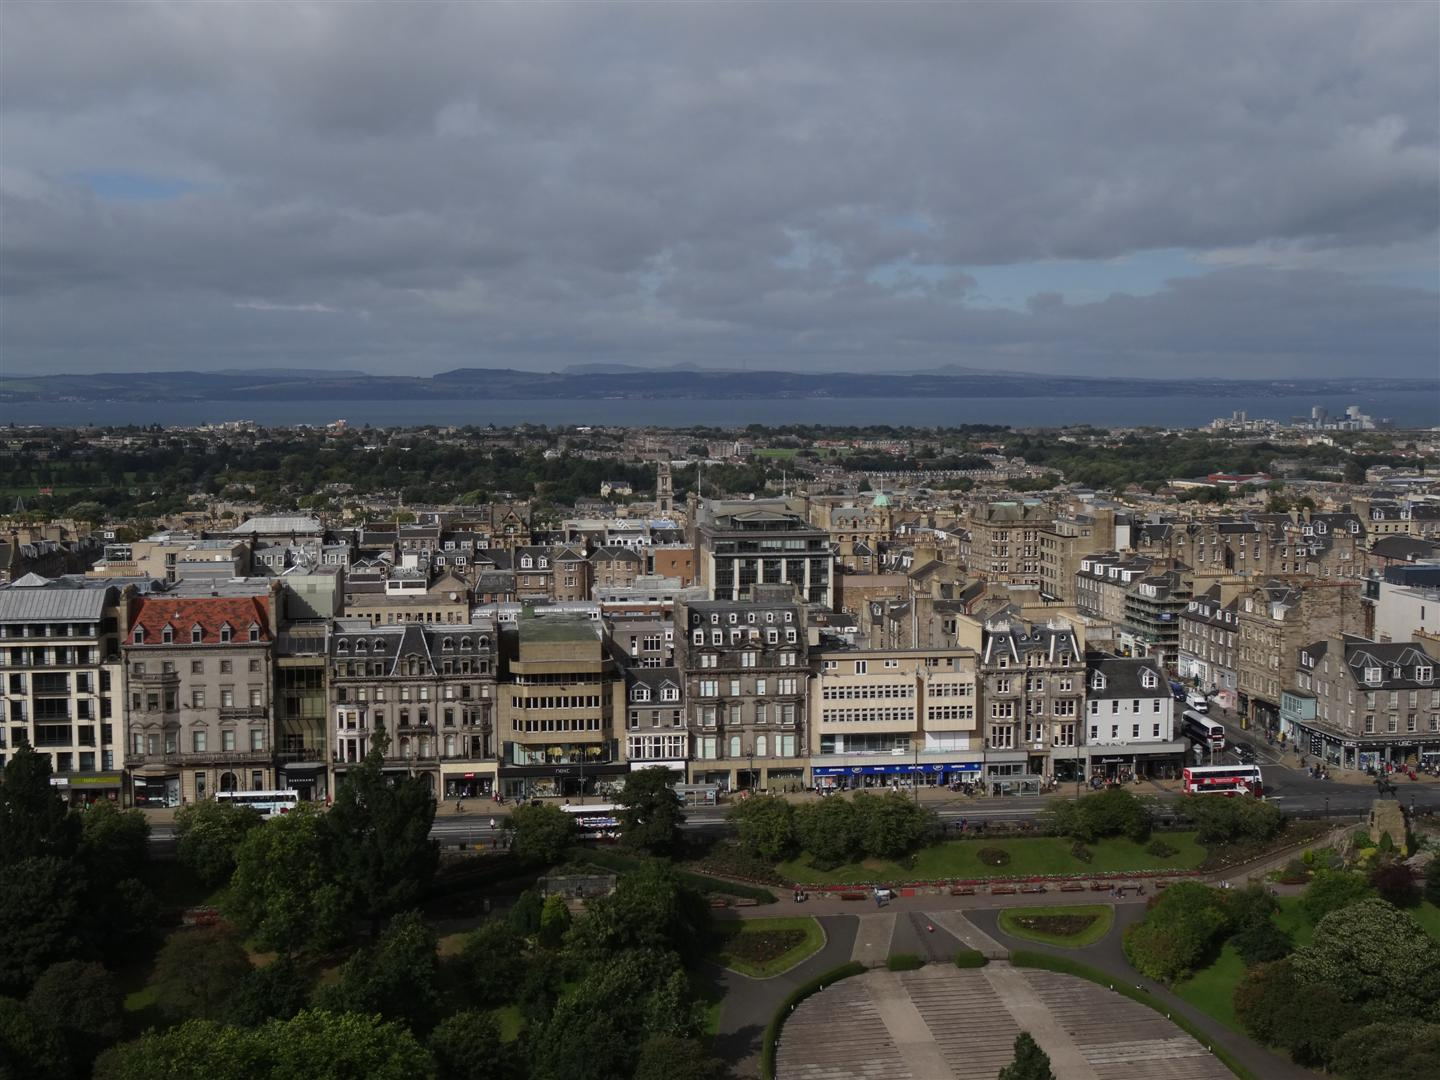 The view over Edinburgh from the Argyll Battery